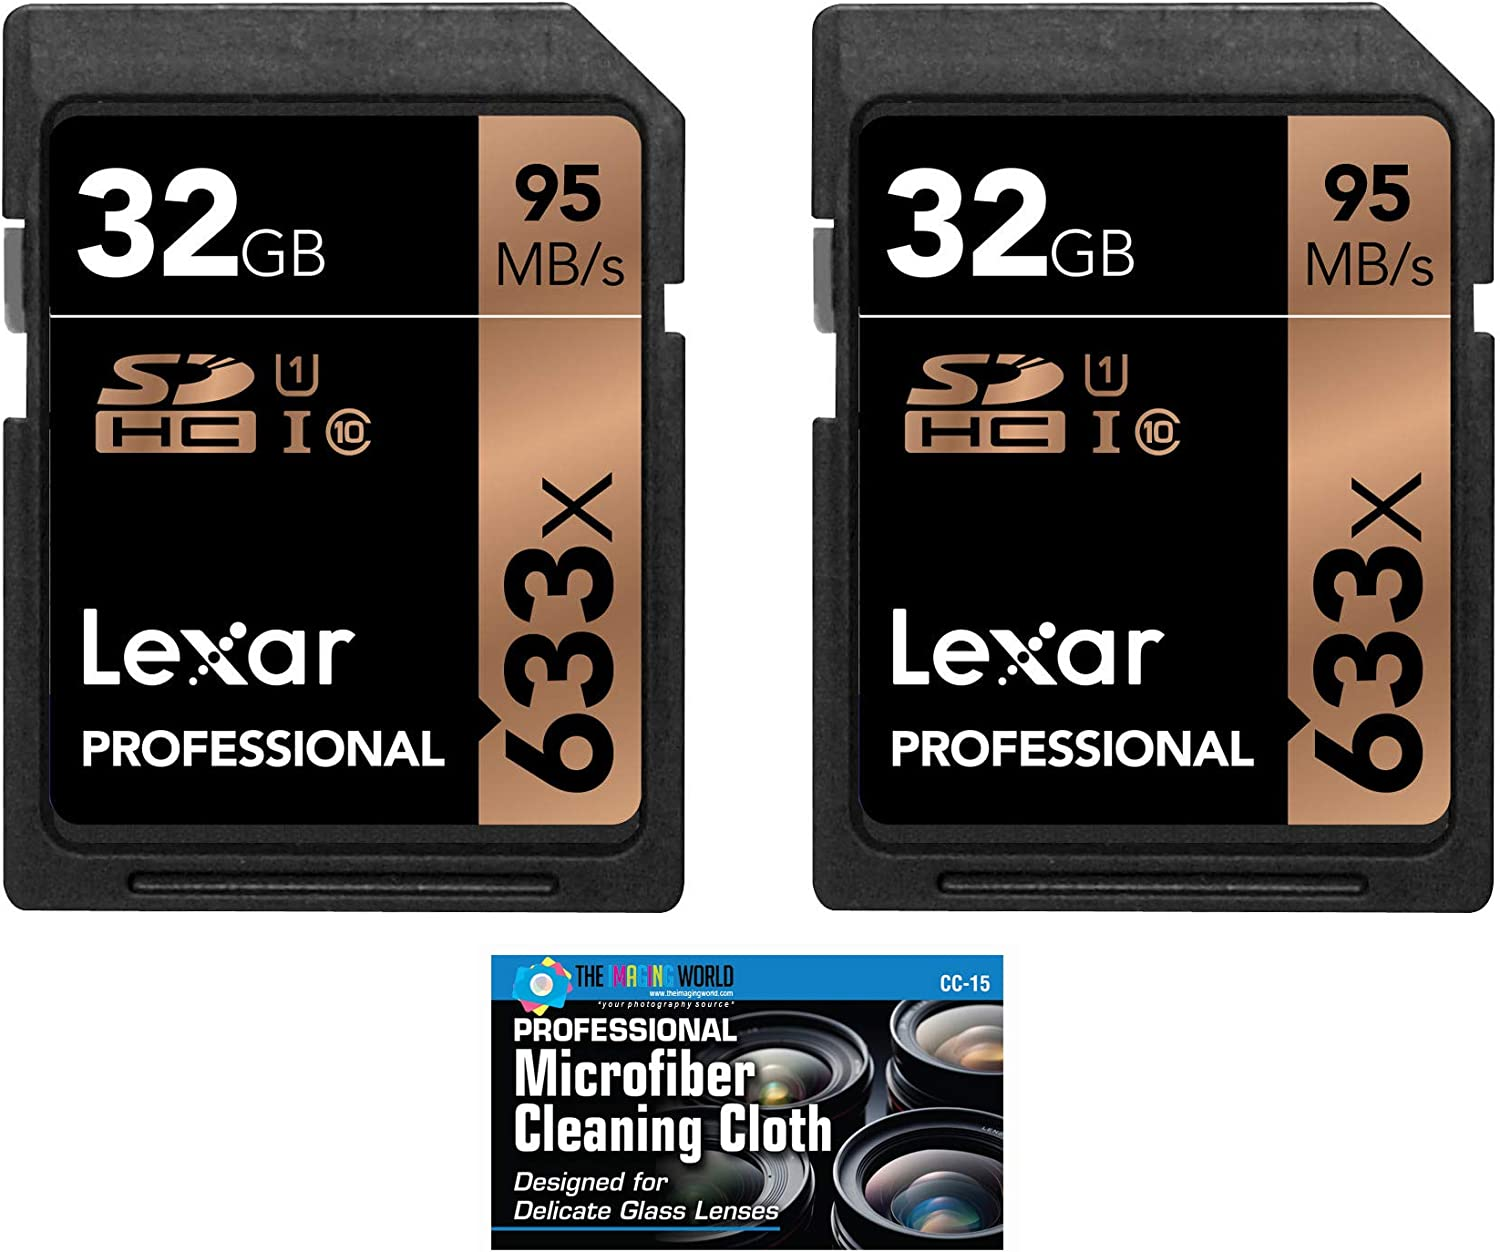 Lexar 32GB Professional 633x SDHC Class 10 UHS-I/U1 Memory Card 2-Pack Bundle (Product Label May Vary)